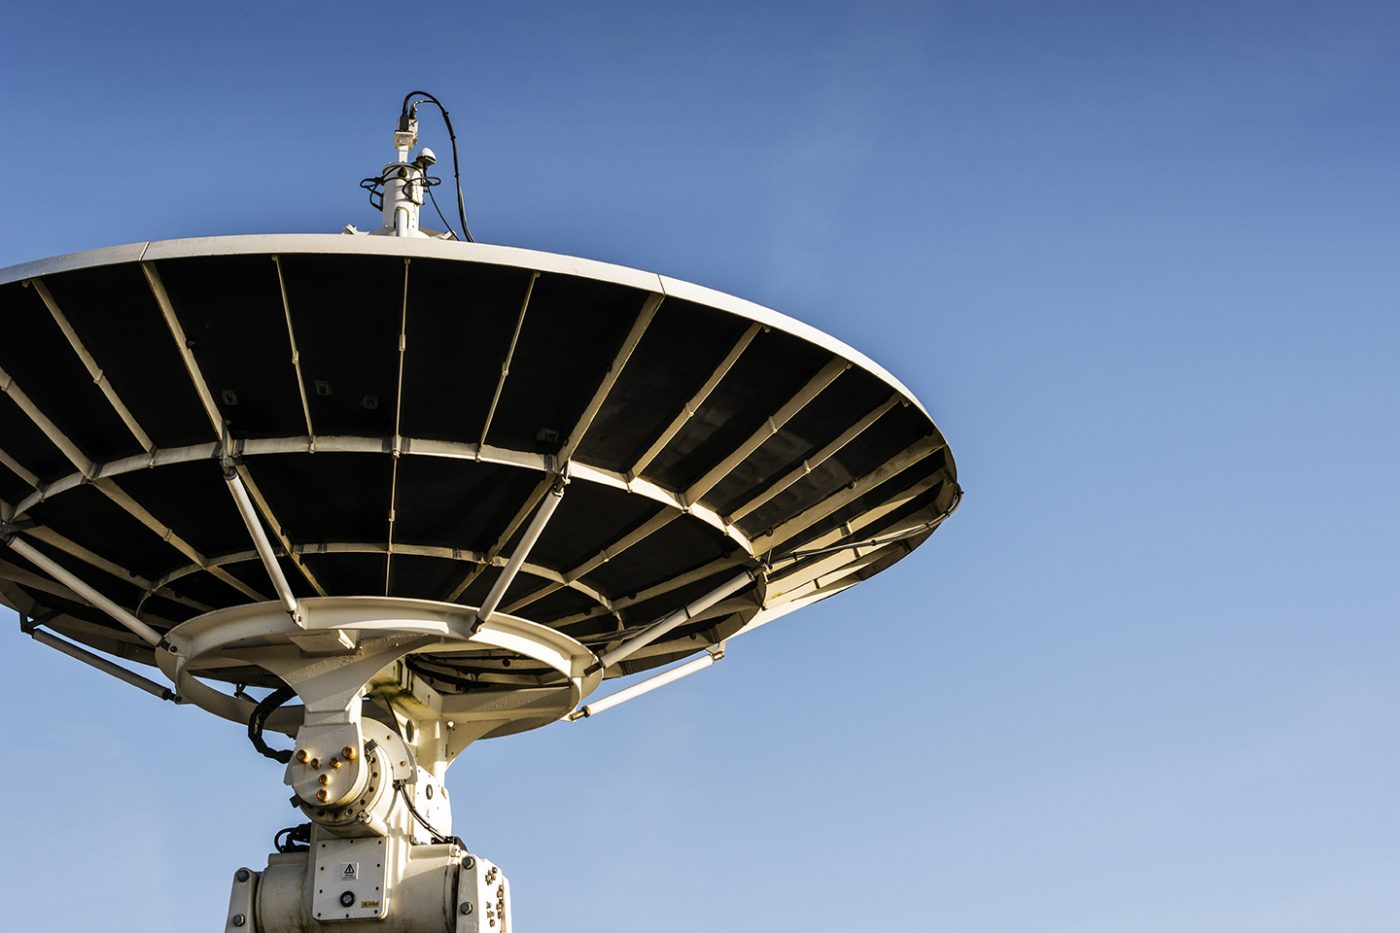 Satellite Dish at Goonhilly space station in Cornwall.